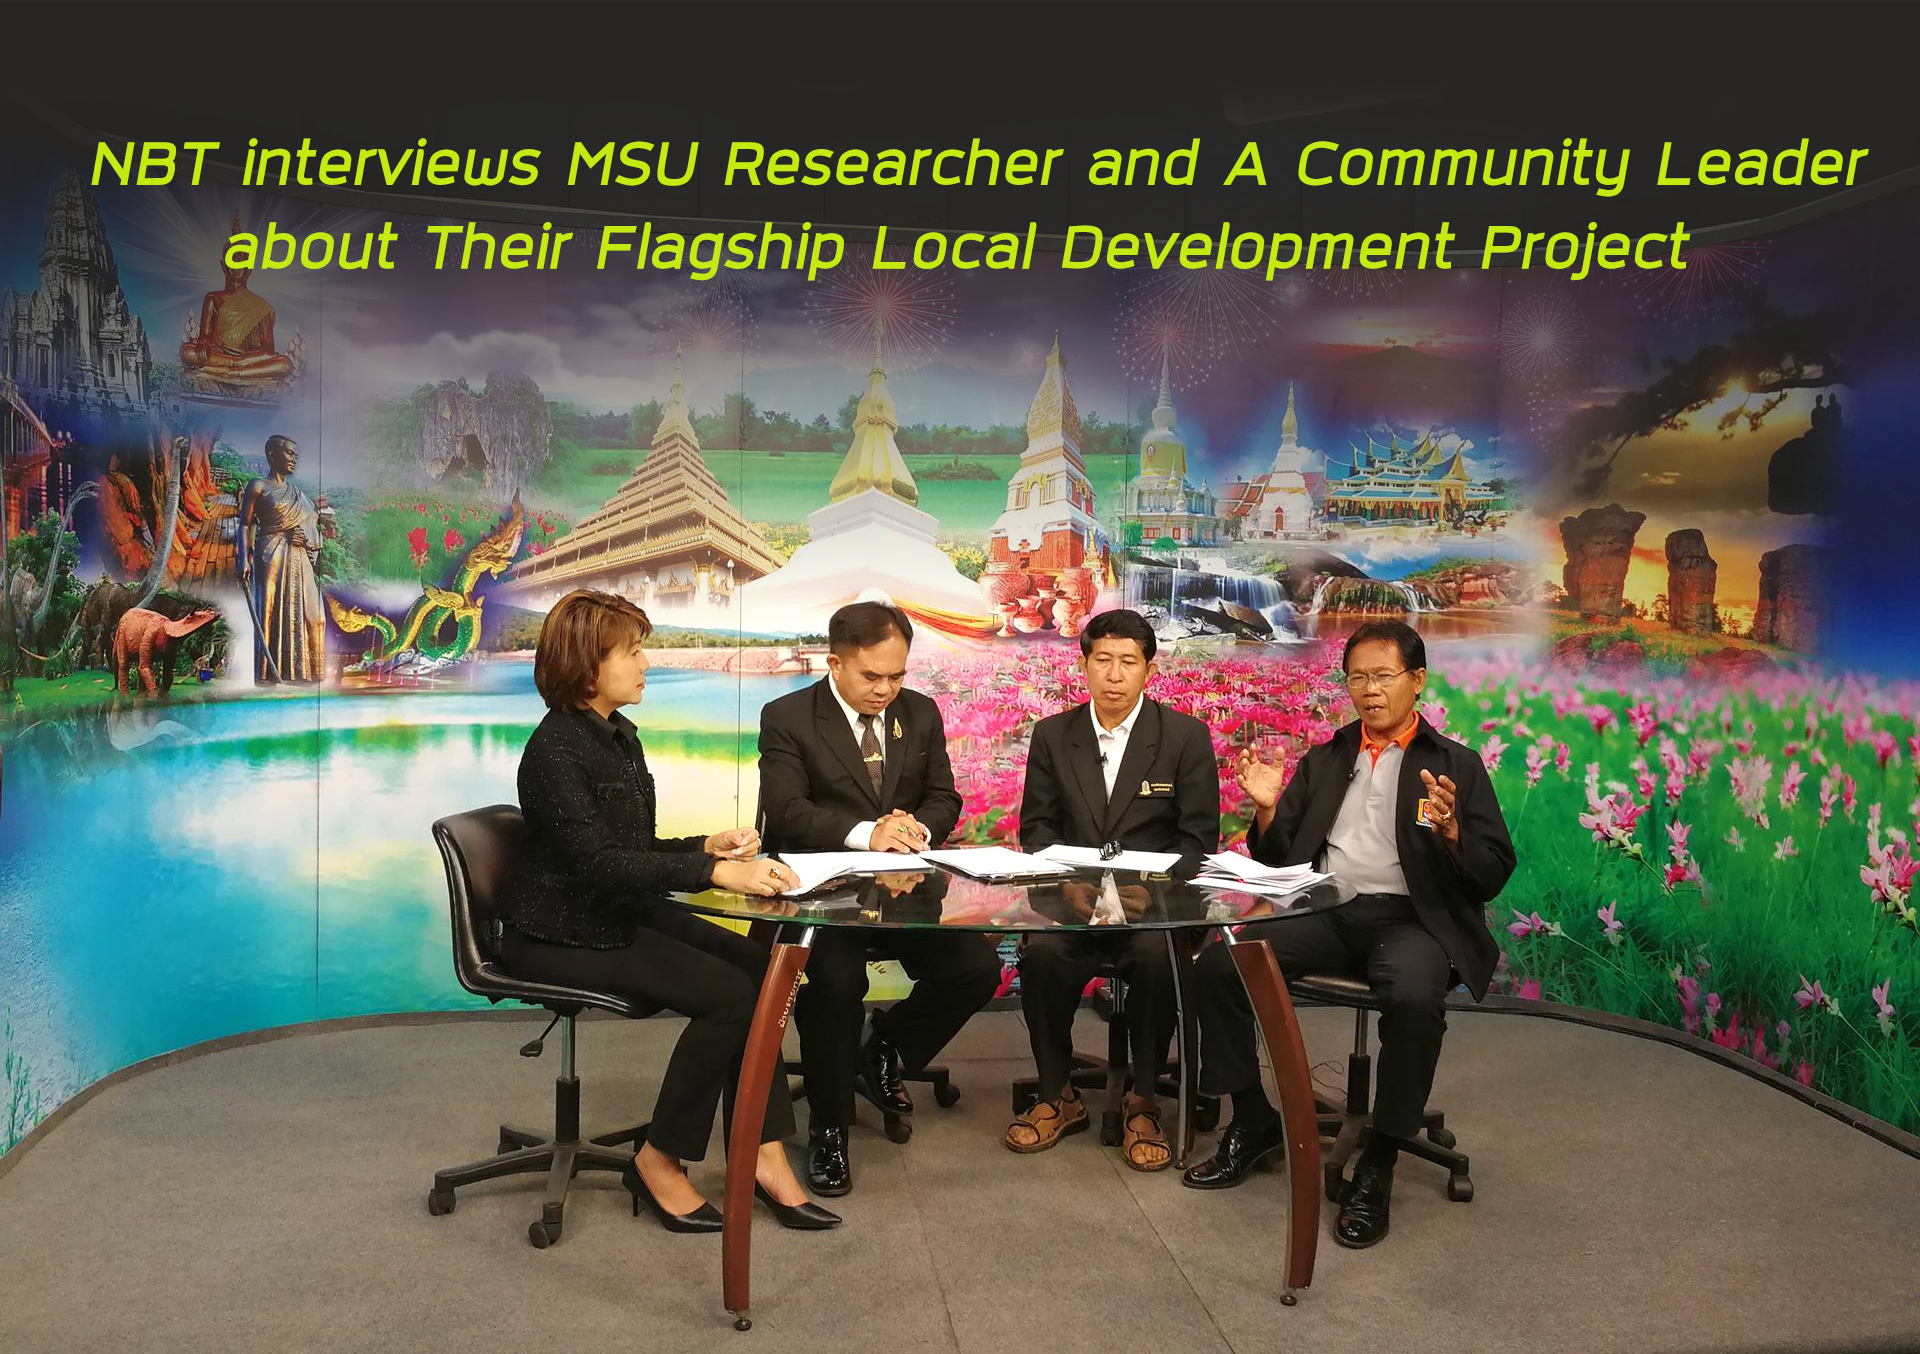 NBT interviews MSU Researcher and A Community Leader about Their Flagship Local Development Project